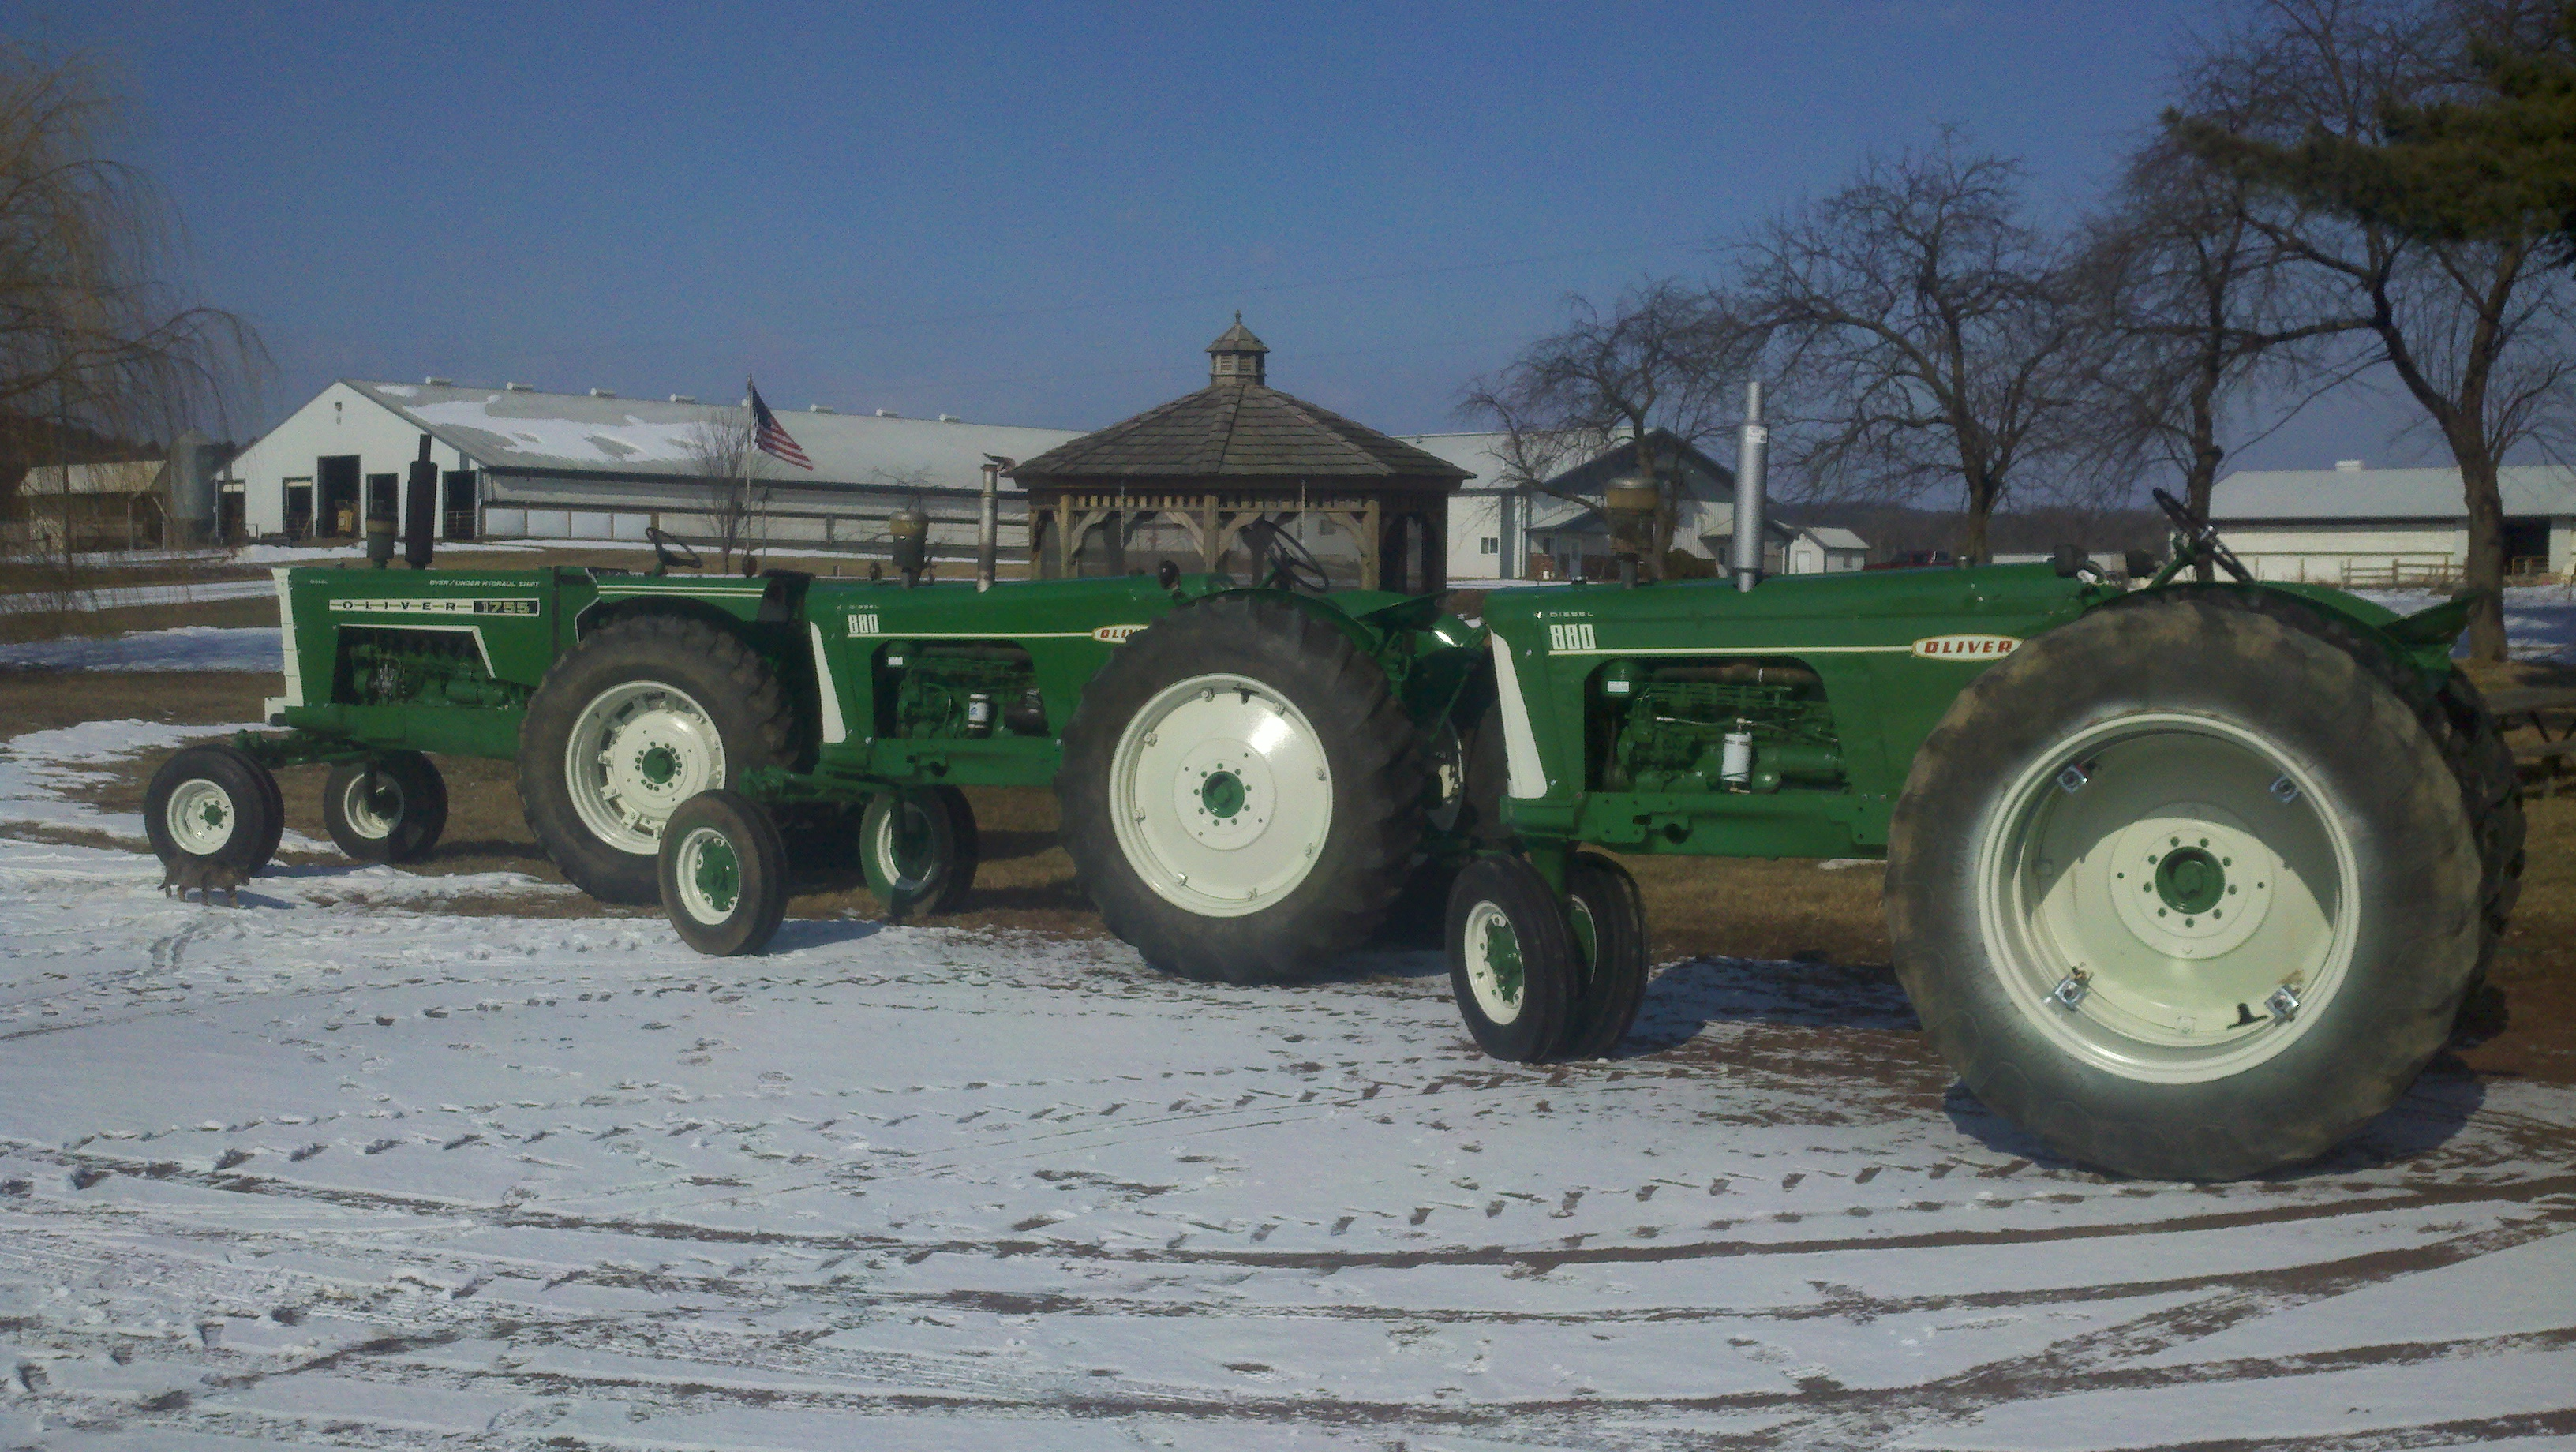 Oliver 1755 Diesel 880 Tractor Wiring Diagram Winter Shop Projects Wisconsin Dairy Farmer 3264x1840